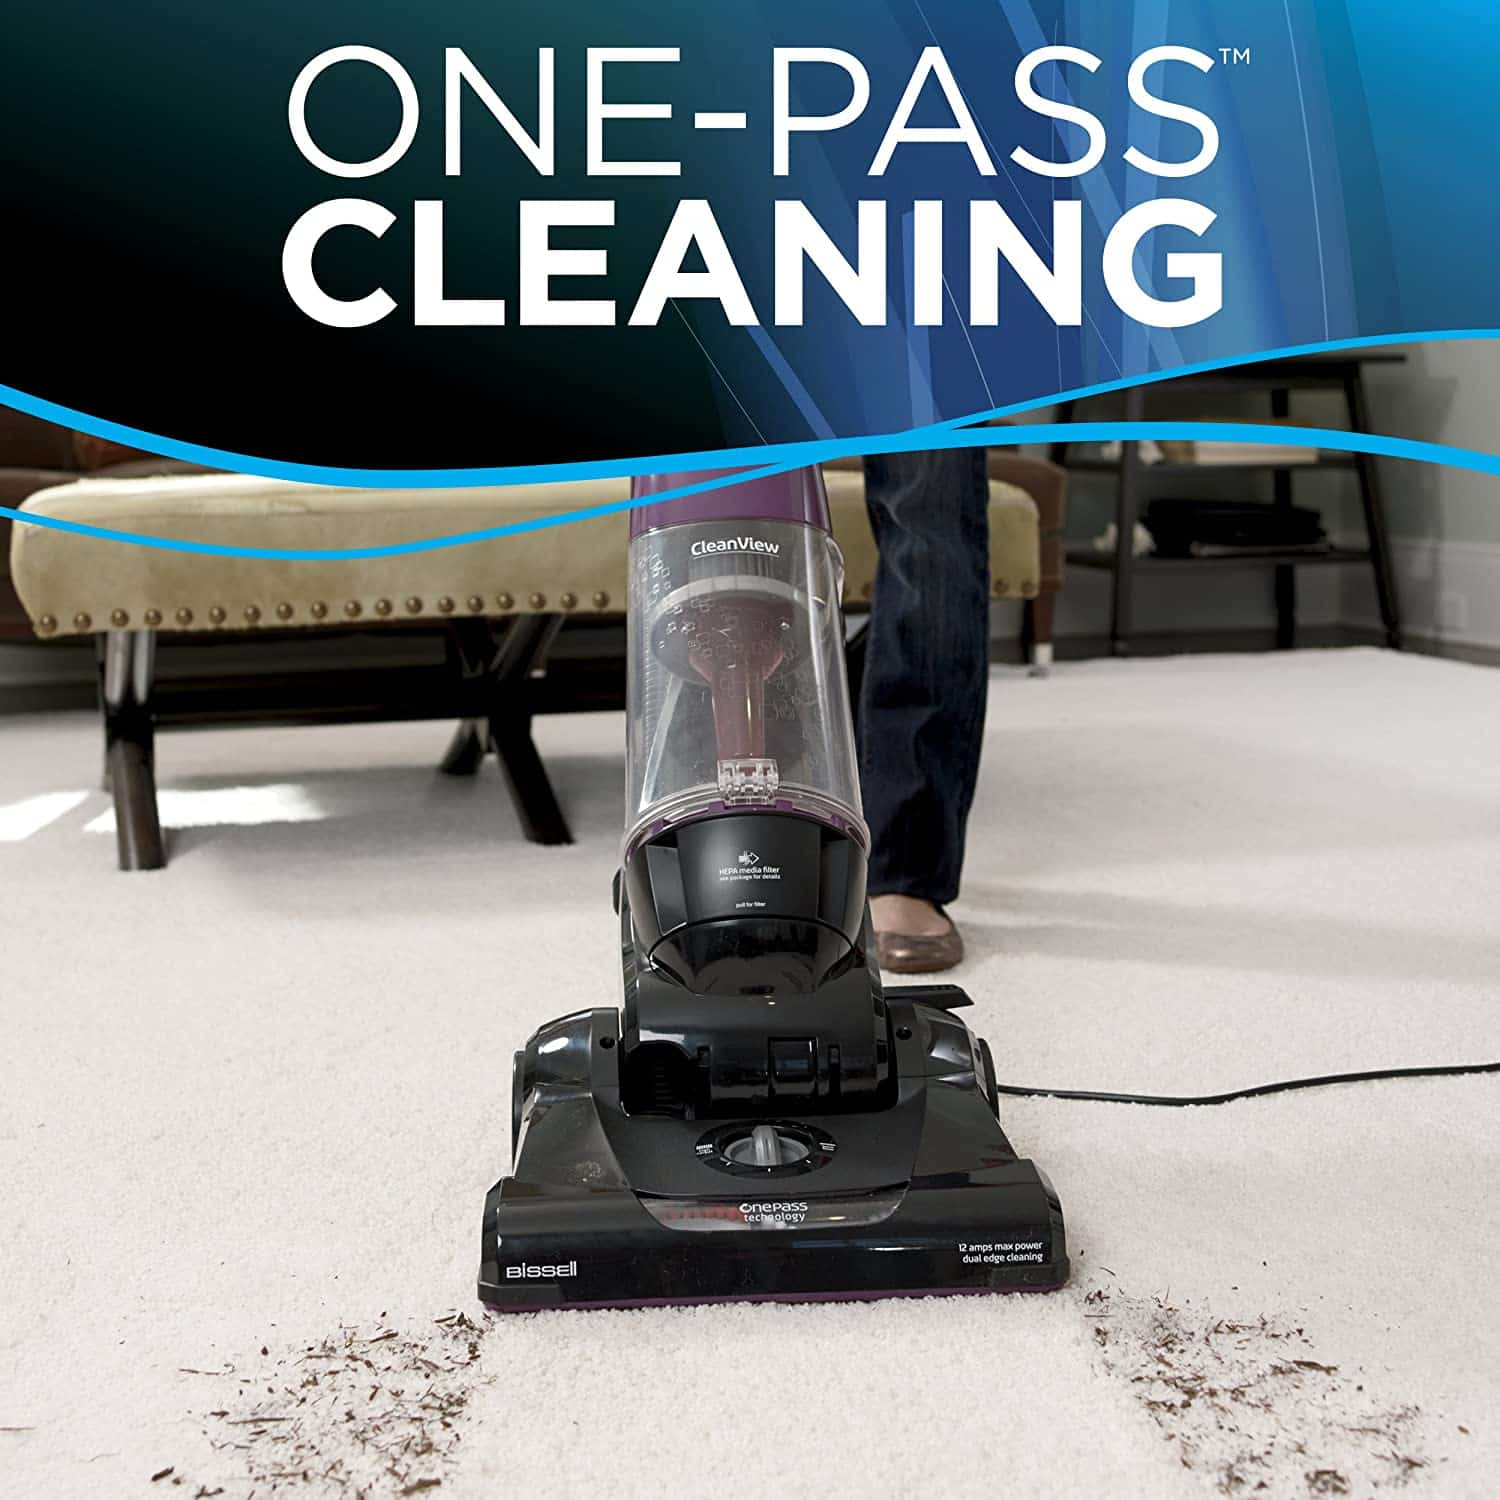 Best upright vacuum under $100: Bissell 9595A OnePass